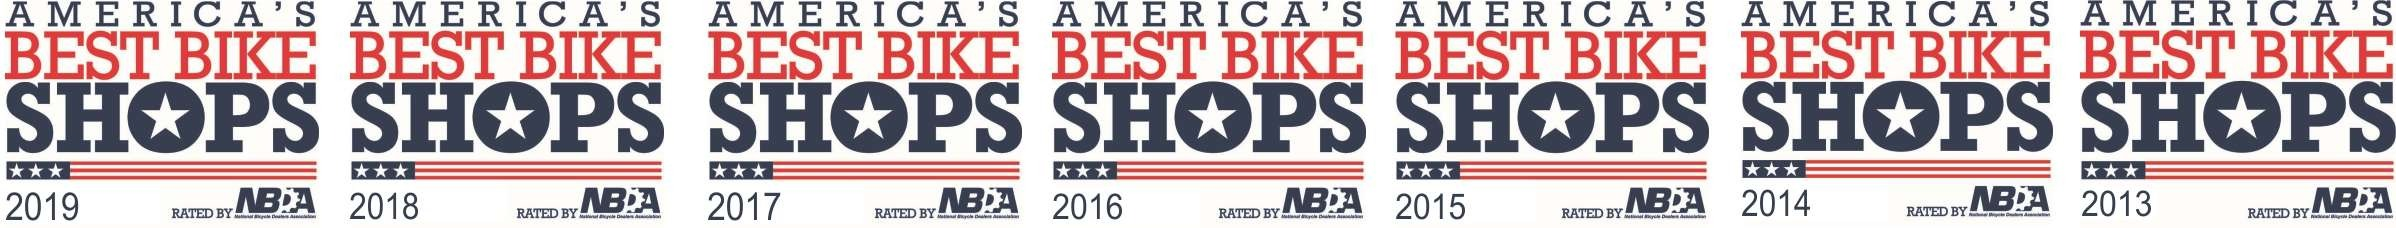 America's Best Bike Shops 2018